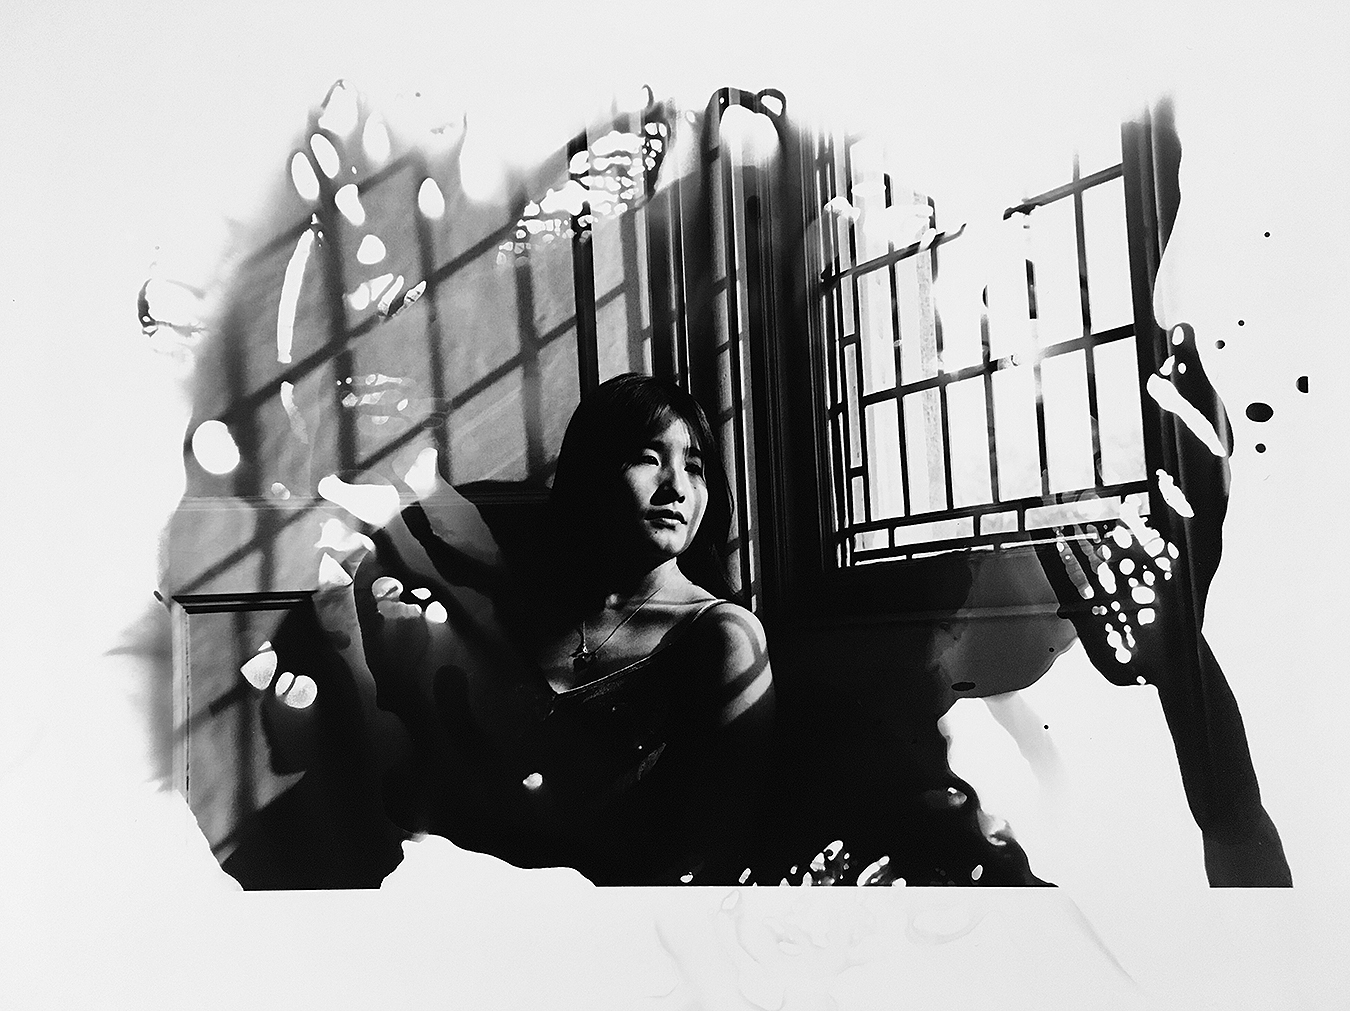 Linda_Ruan_depressed_girl_black_white_chirascuro_young_woman_asian_study_beauty_dreamscape_time